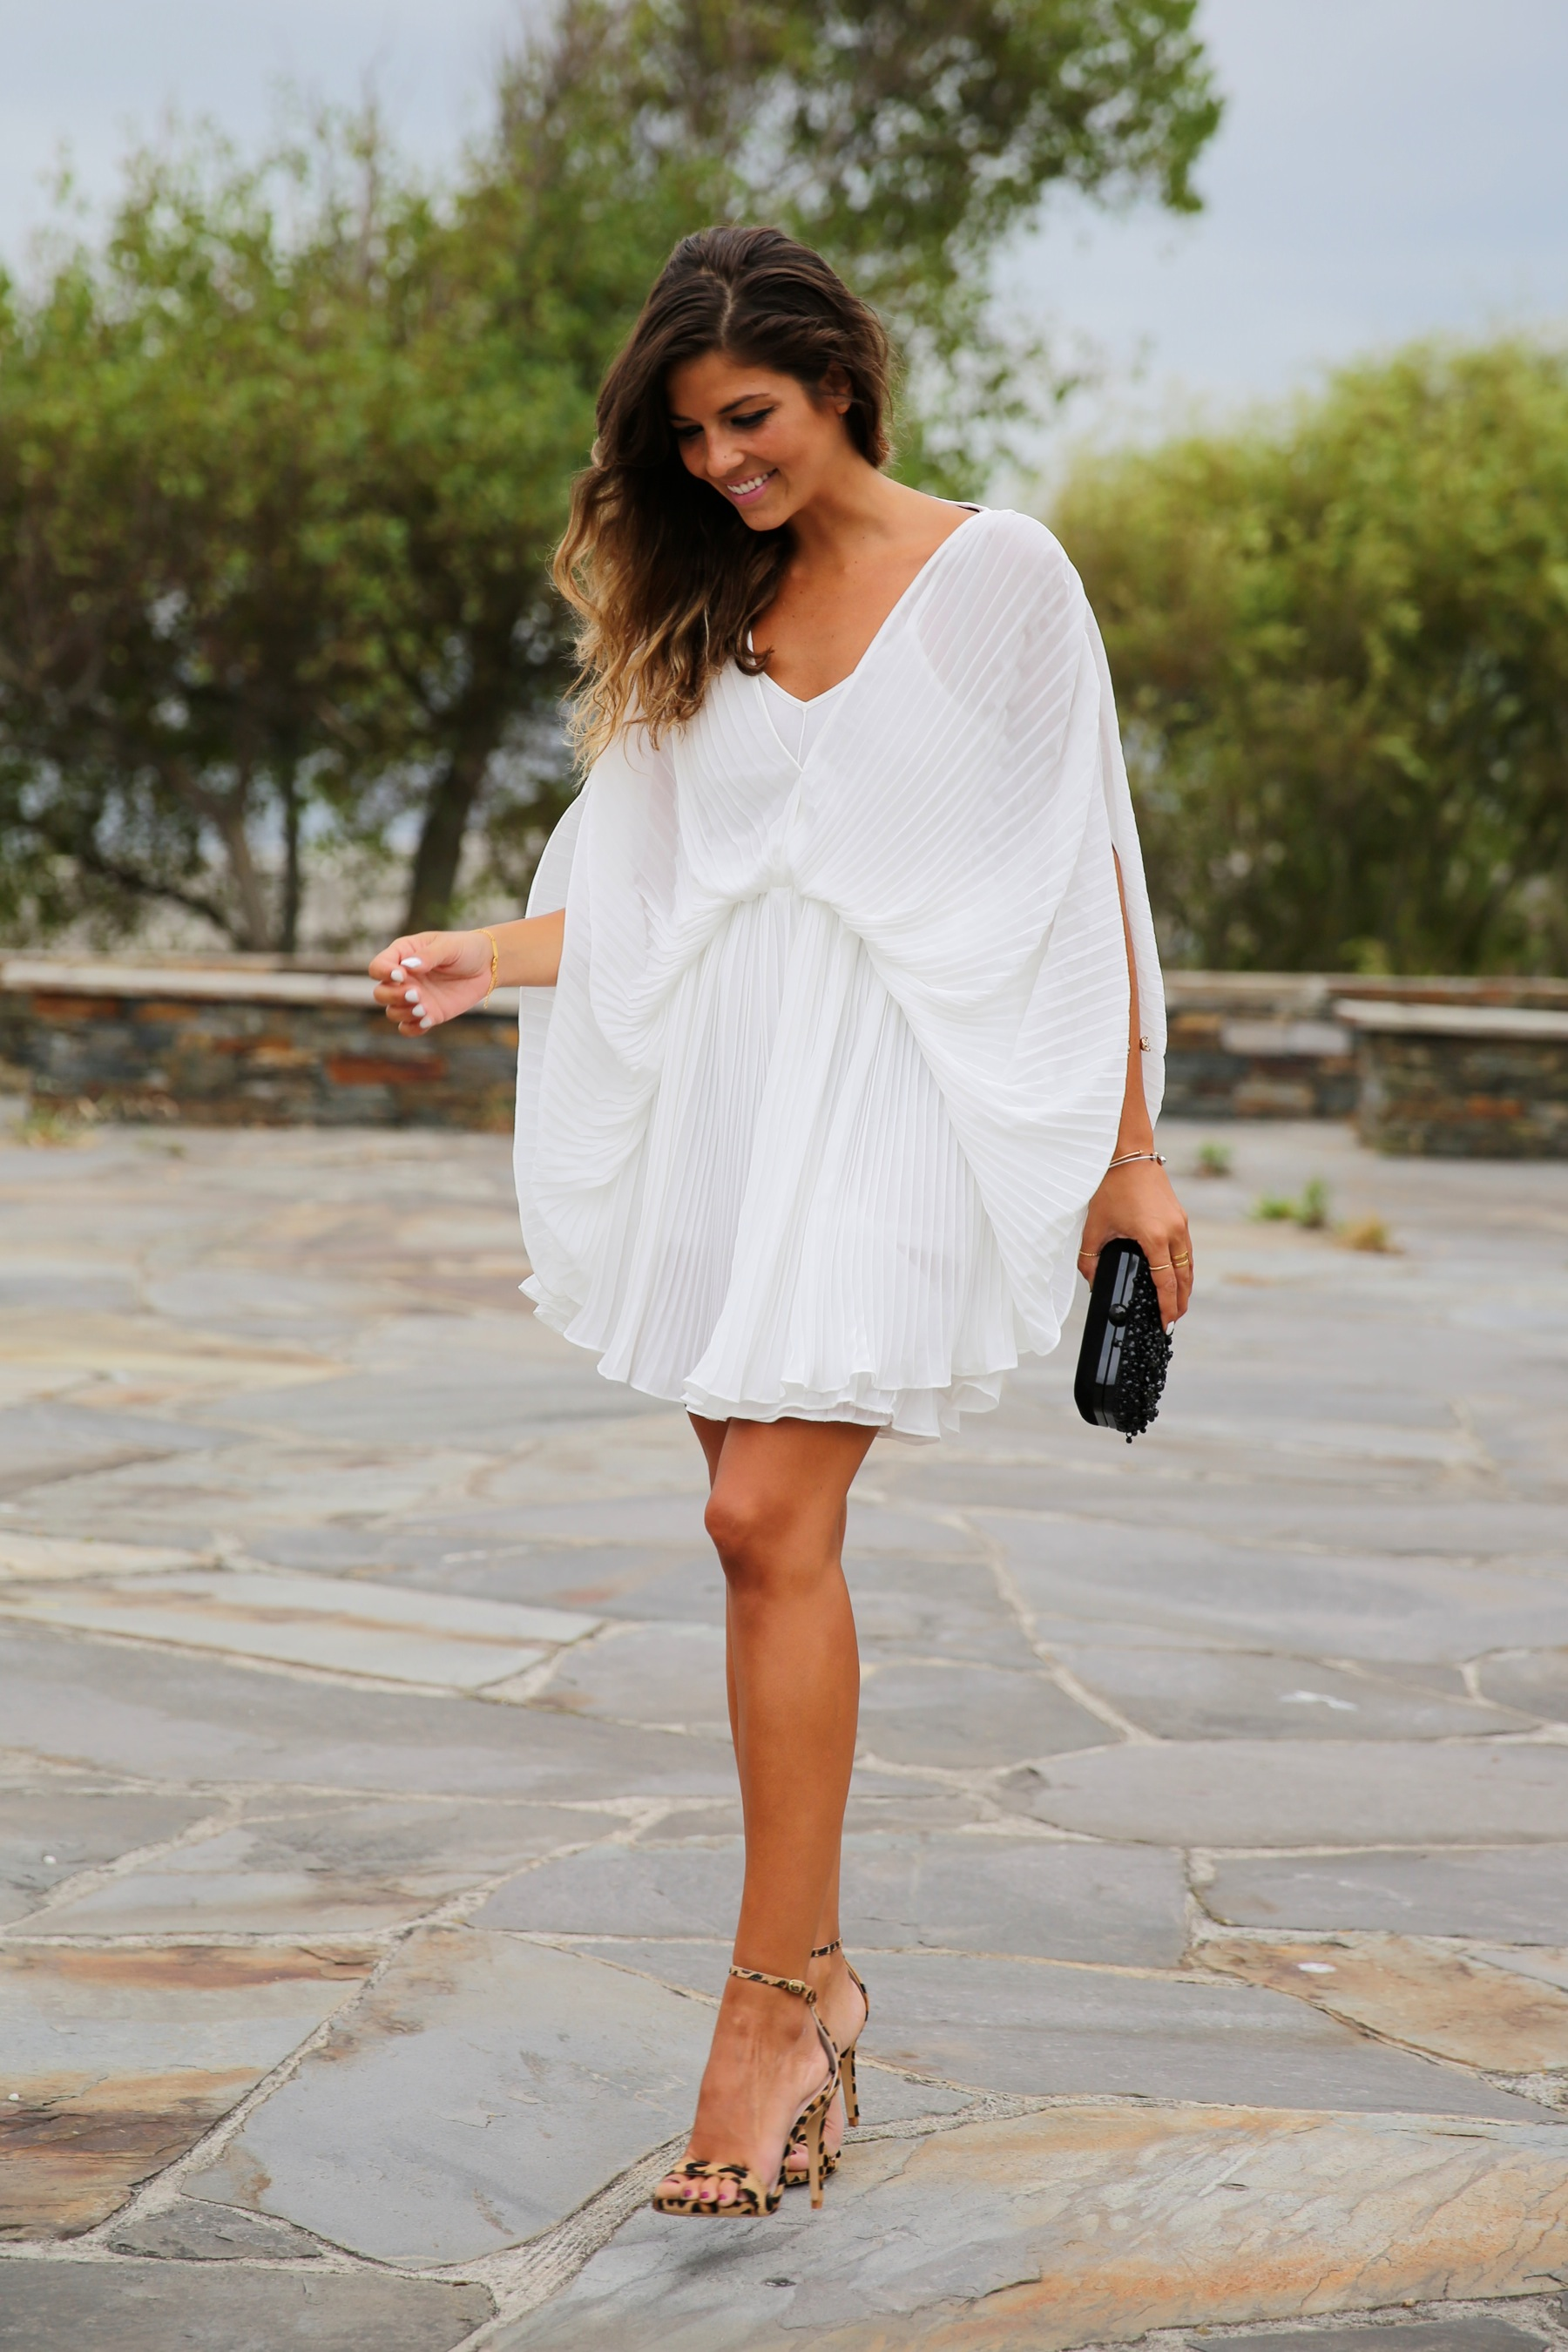 trendy_taste-look-outfit-street_style-fashion_spain-moda_españa-blog-blogger-vestido_blanco-white_dress-müic-jewels-joyas-leo_sandals-sandalias_leopardo-clutch_pedreria-11